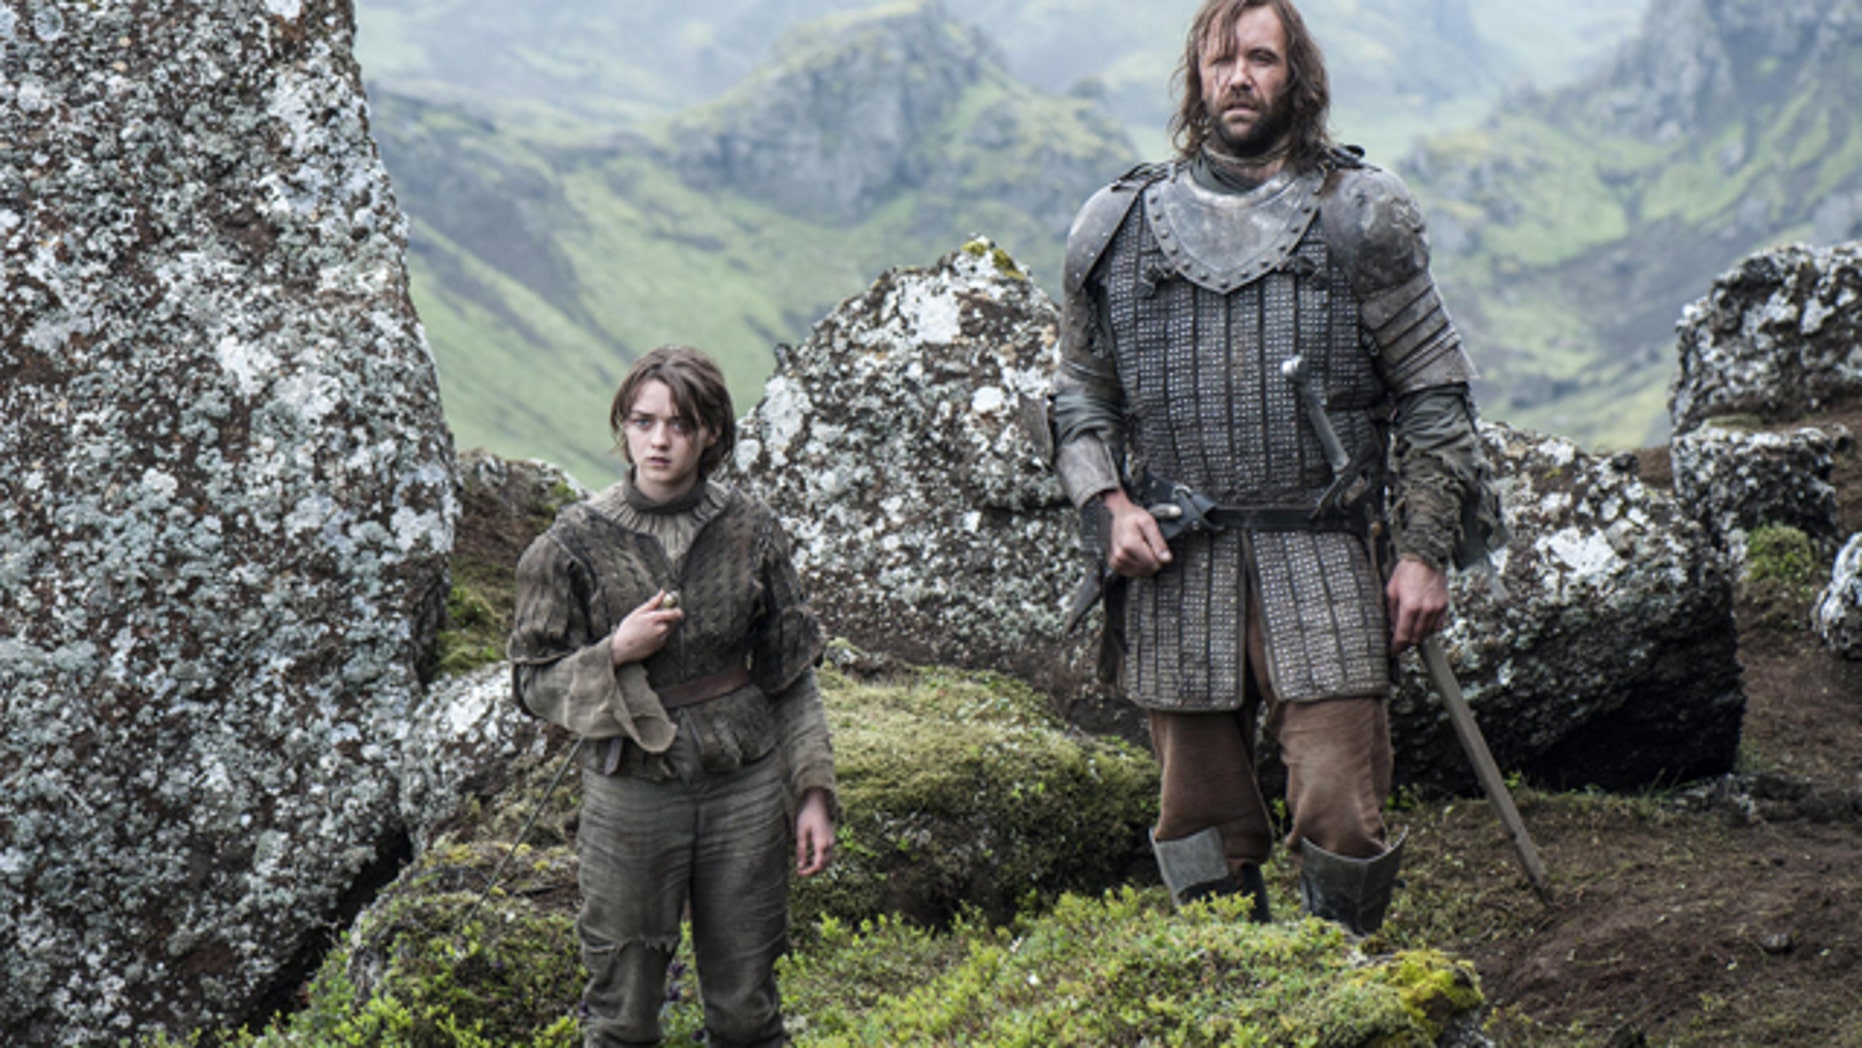 Arya Stark (Maisie Williams) and The Hound (Rory McCann) on HBO's 'Game of Thrones' (Courtesy HBO)